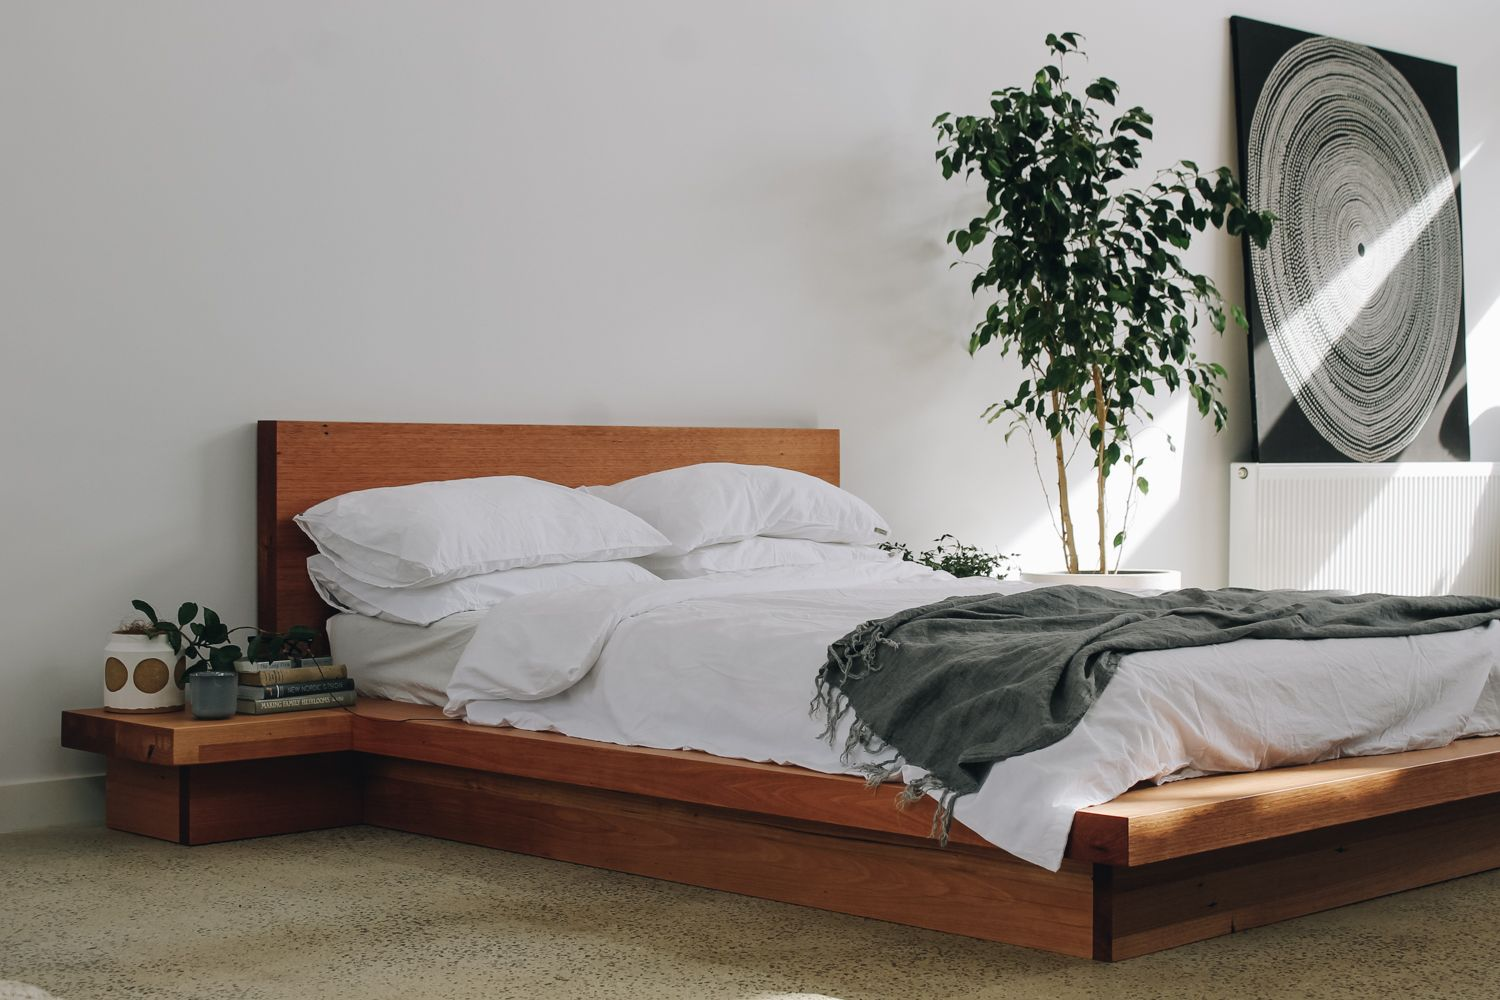 Ledge Bed Handmade Recycled Messmate Timber Bed Frame With Built